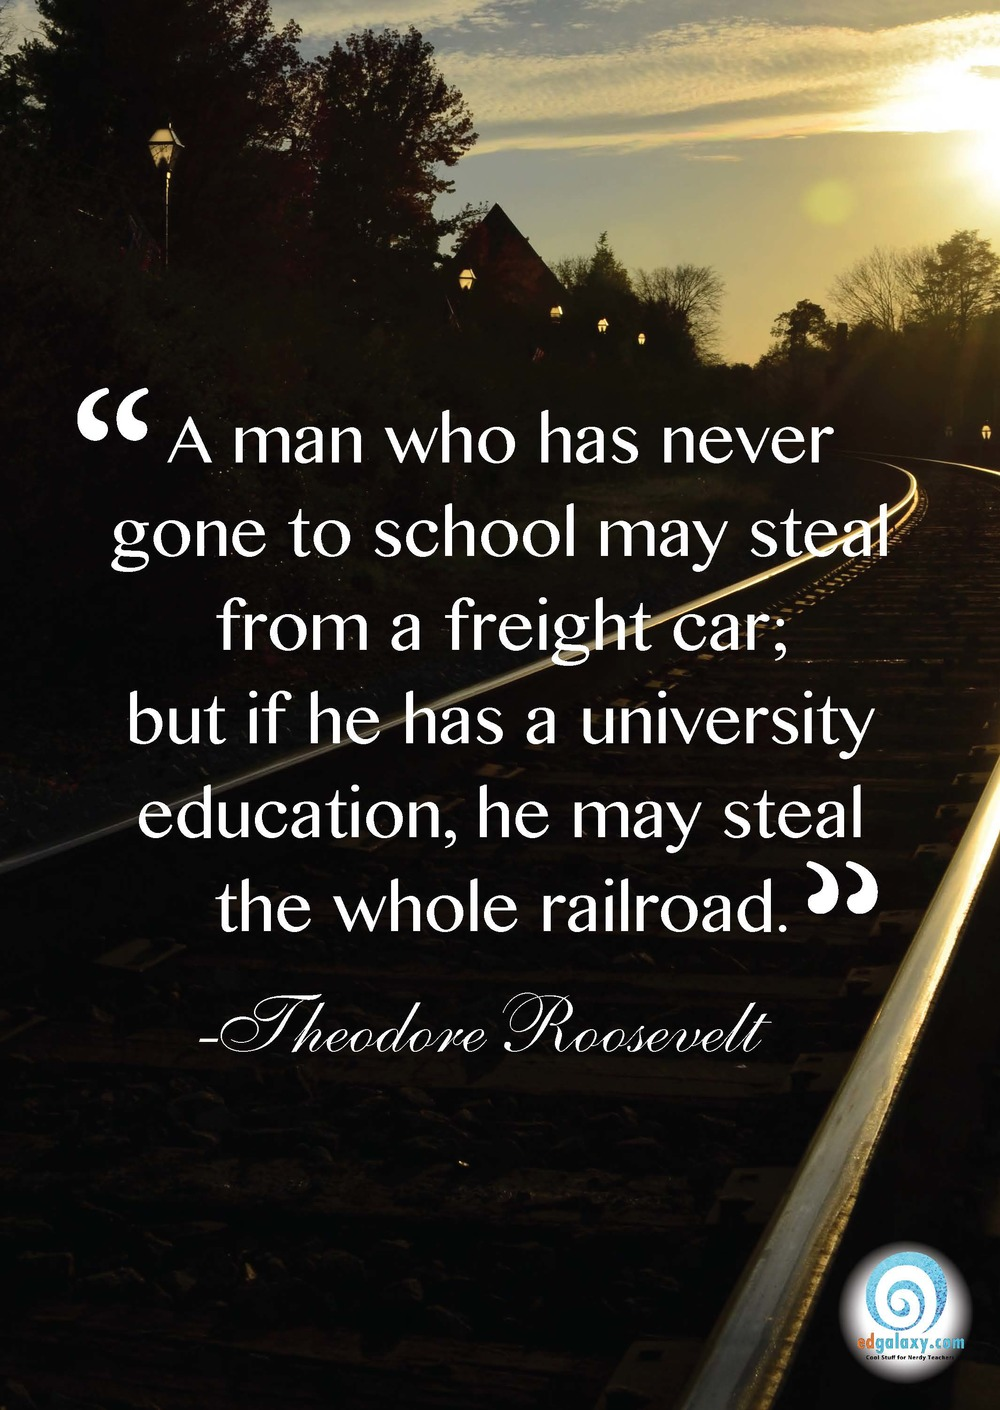 Inspirational Quotes About Education Mesmerizing Education Quotes  Famous Quotes For Teachers And Students .